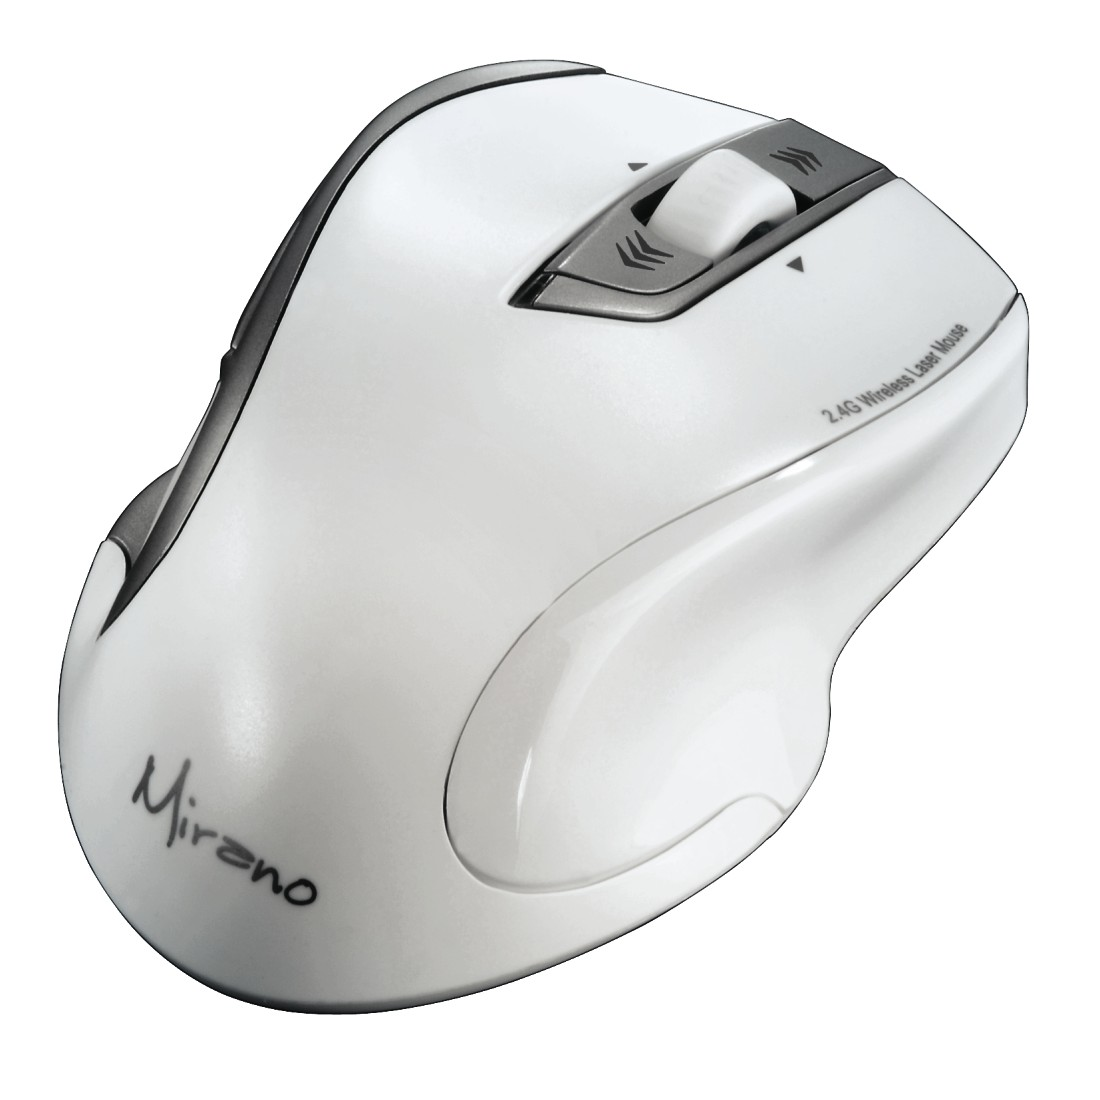 abx High-Res Image - Hama, Mirano Wireless Laser Mouse, noiseless, white